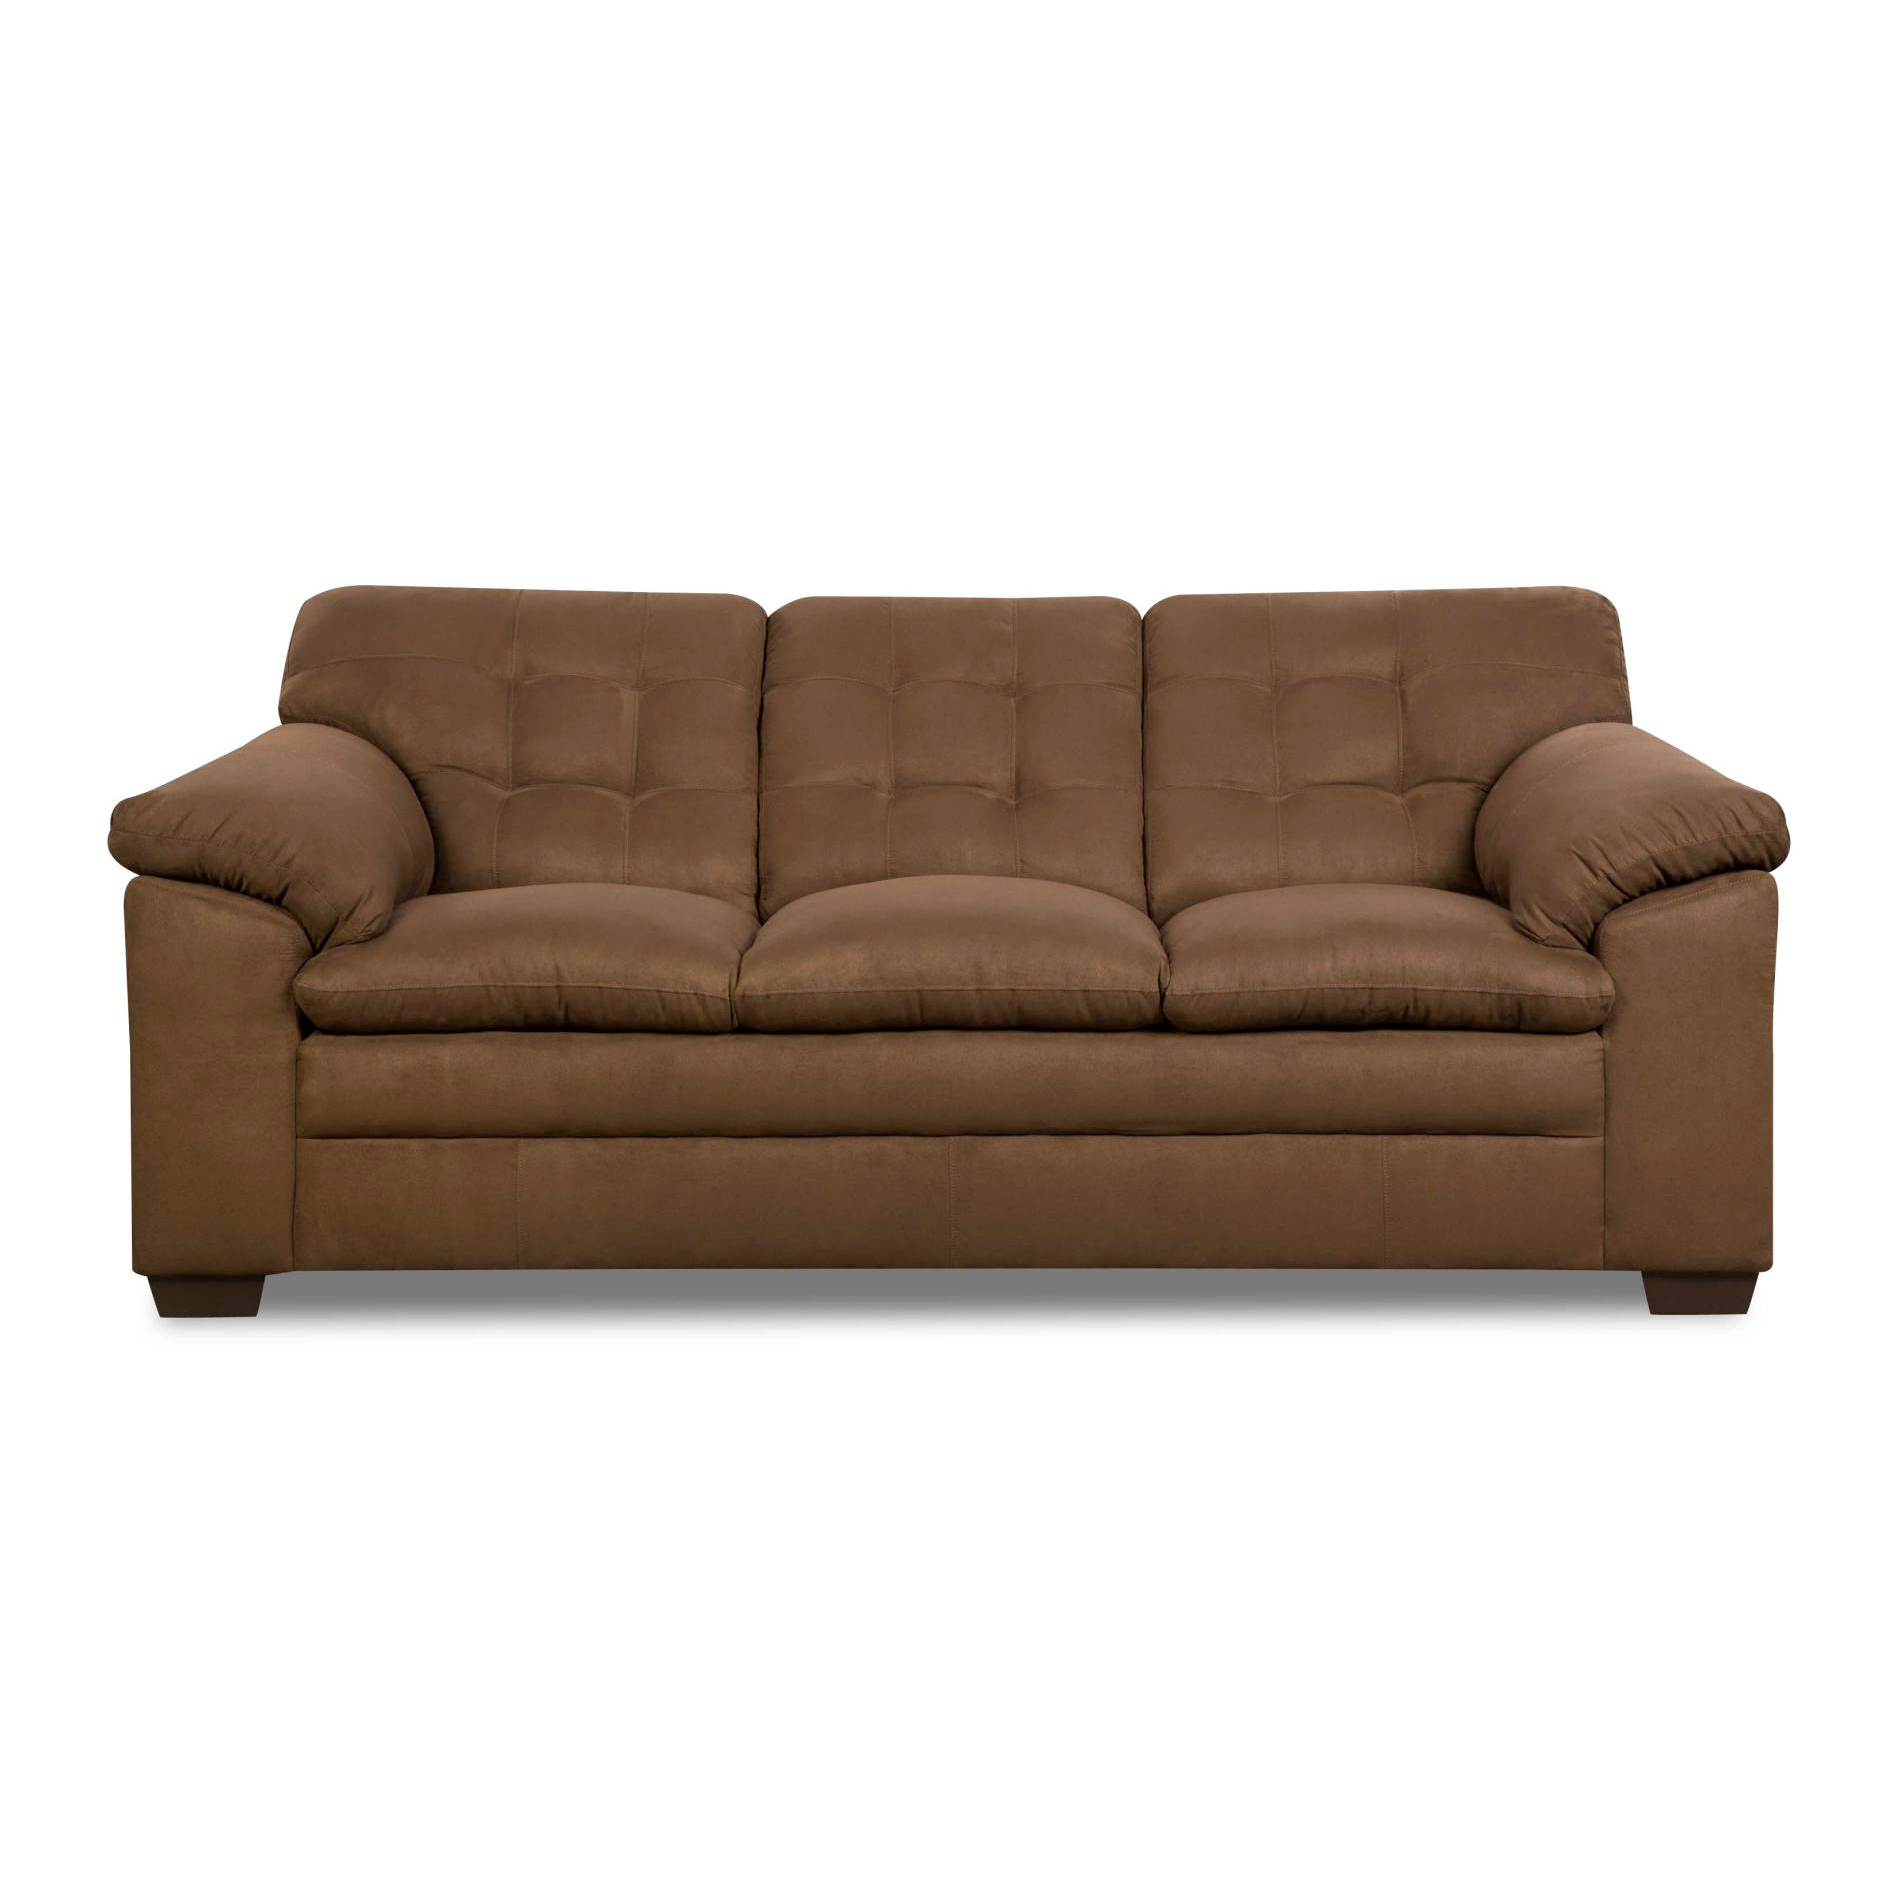 Cushions For Brown Leather Sofas Simmons Brown Griffin 3 Cushion Contemporary Sofa